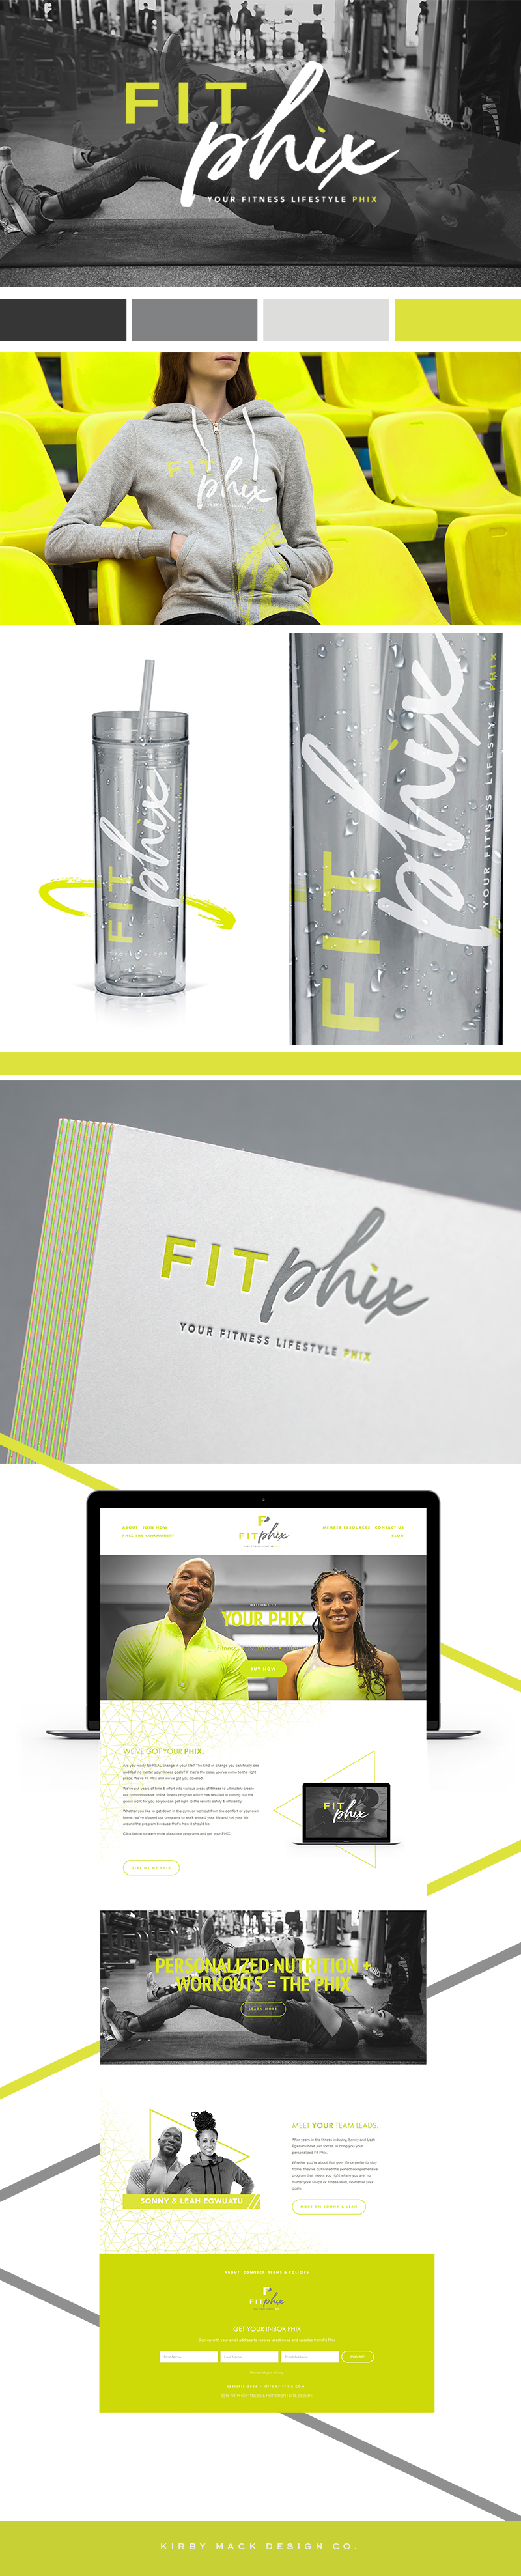 Fit_phix_Brand_collateral v2